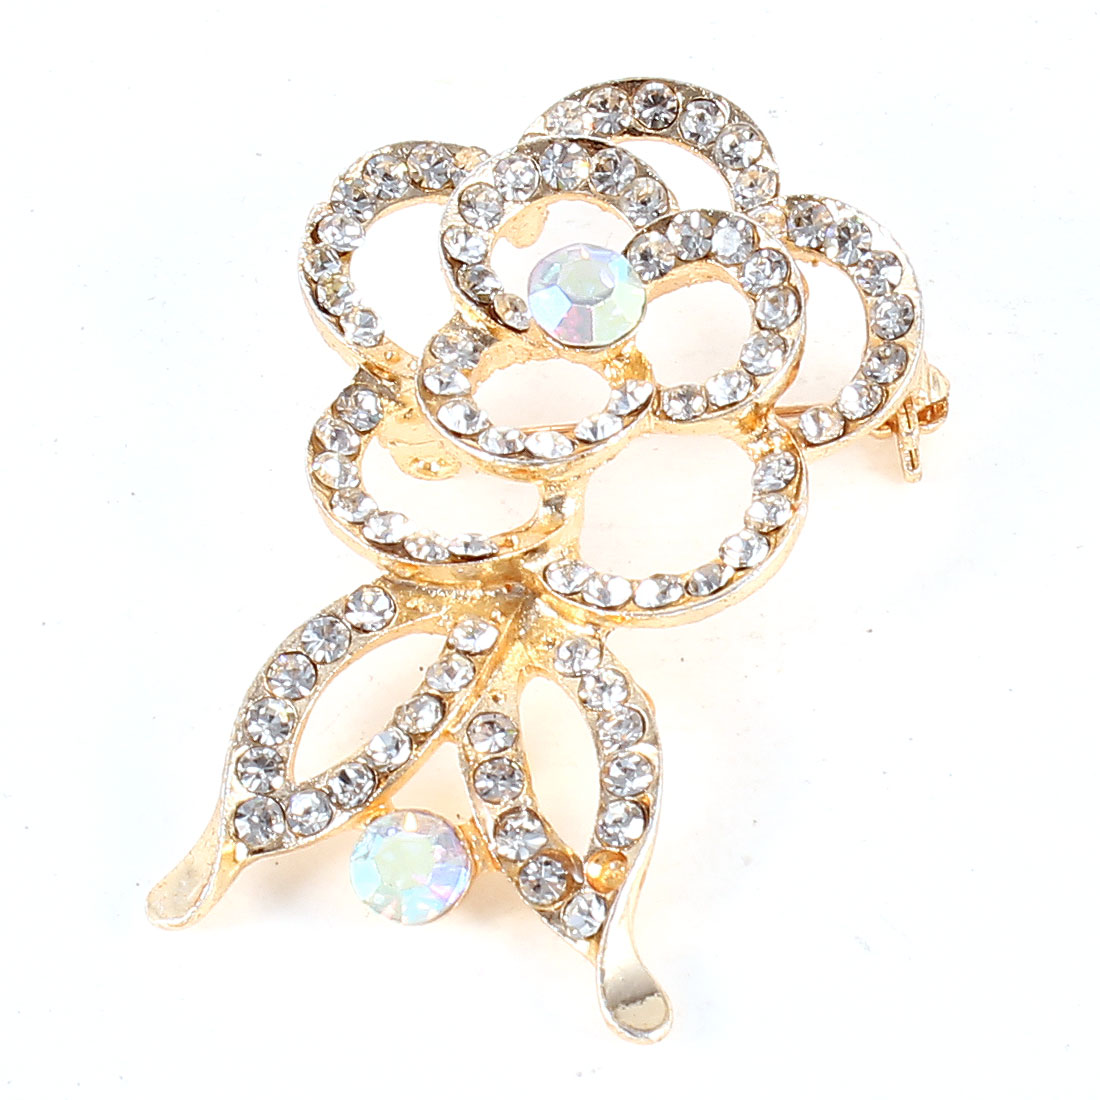 Glistening Rhinestone Decor Flower Shape Silver Tone Metal Safety Pin Brooch